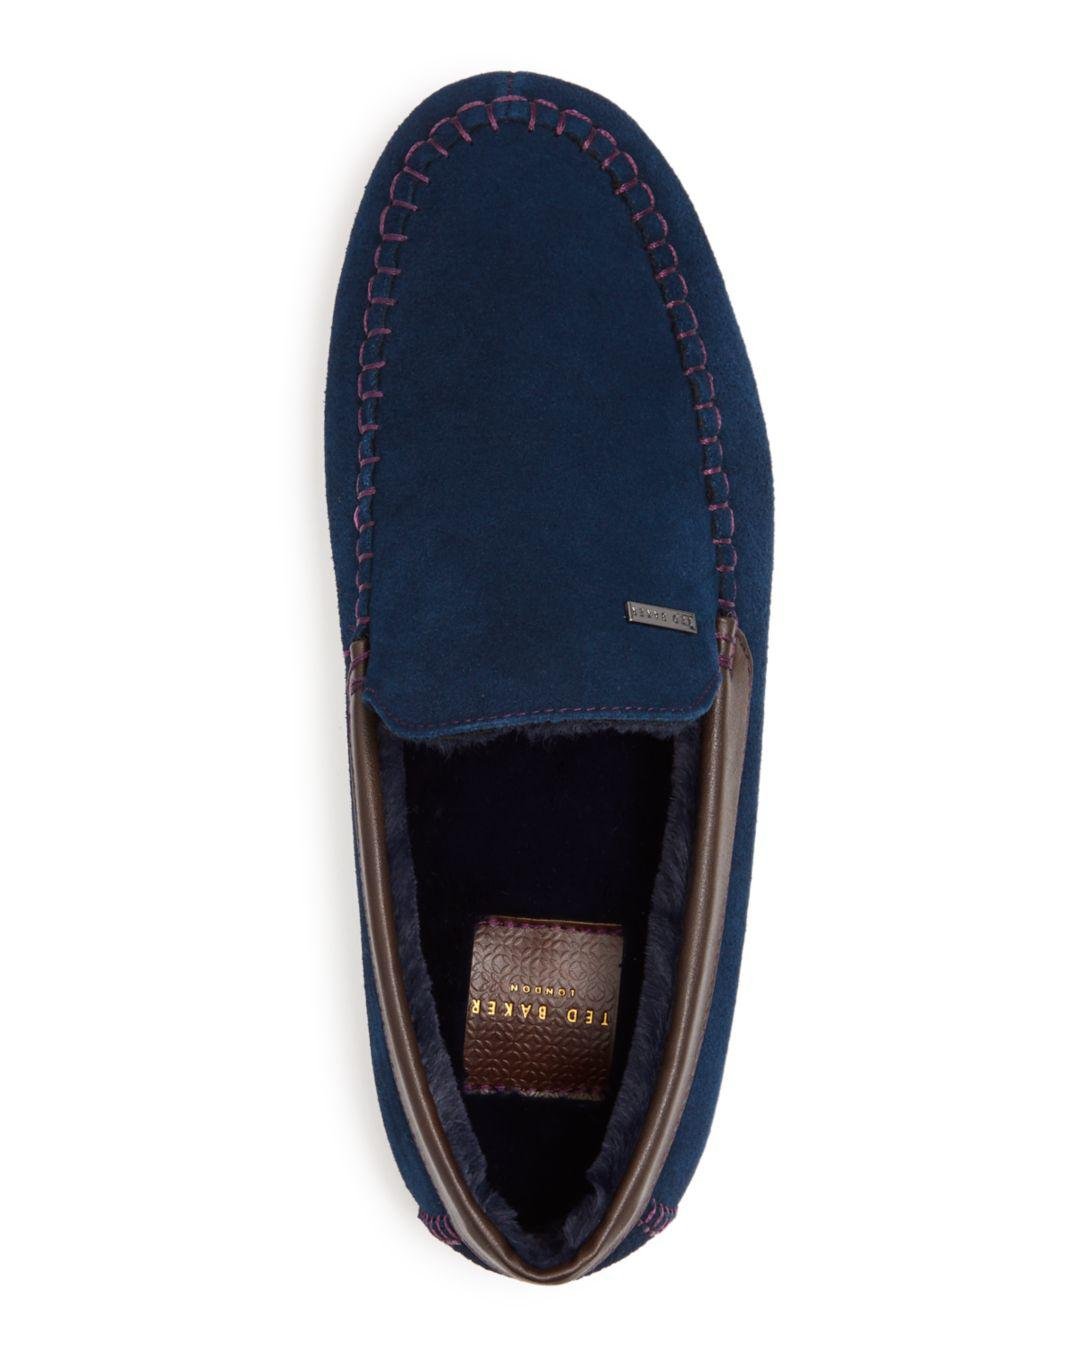 a5cab0d0856 Lyst - Ted Baker Men s Moriss Suede Moccasin Loafers in Blue for Men